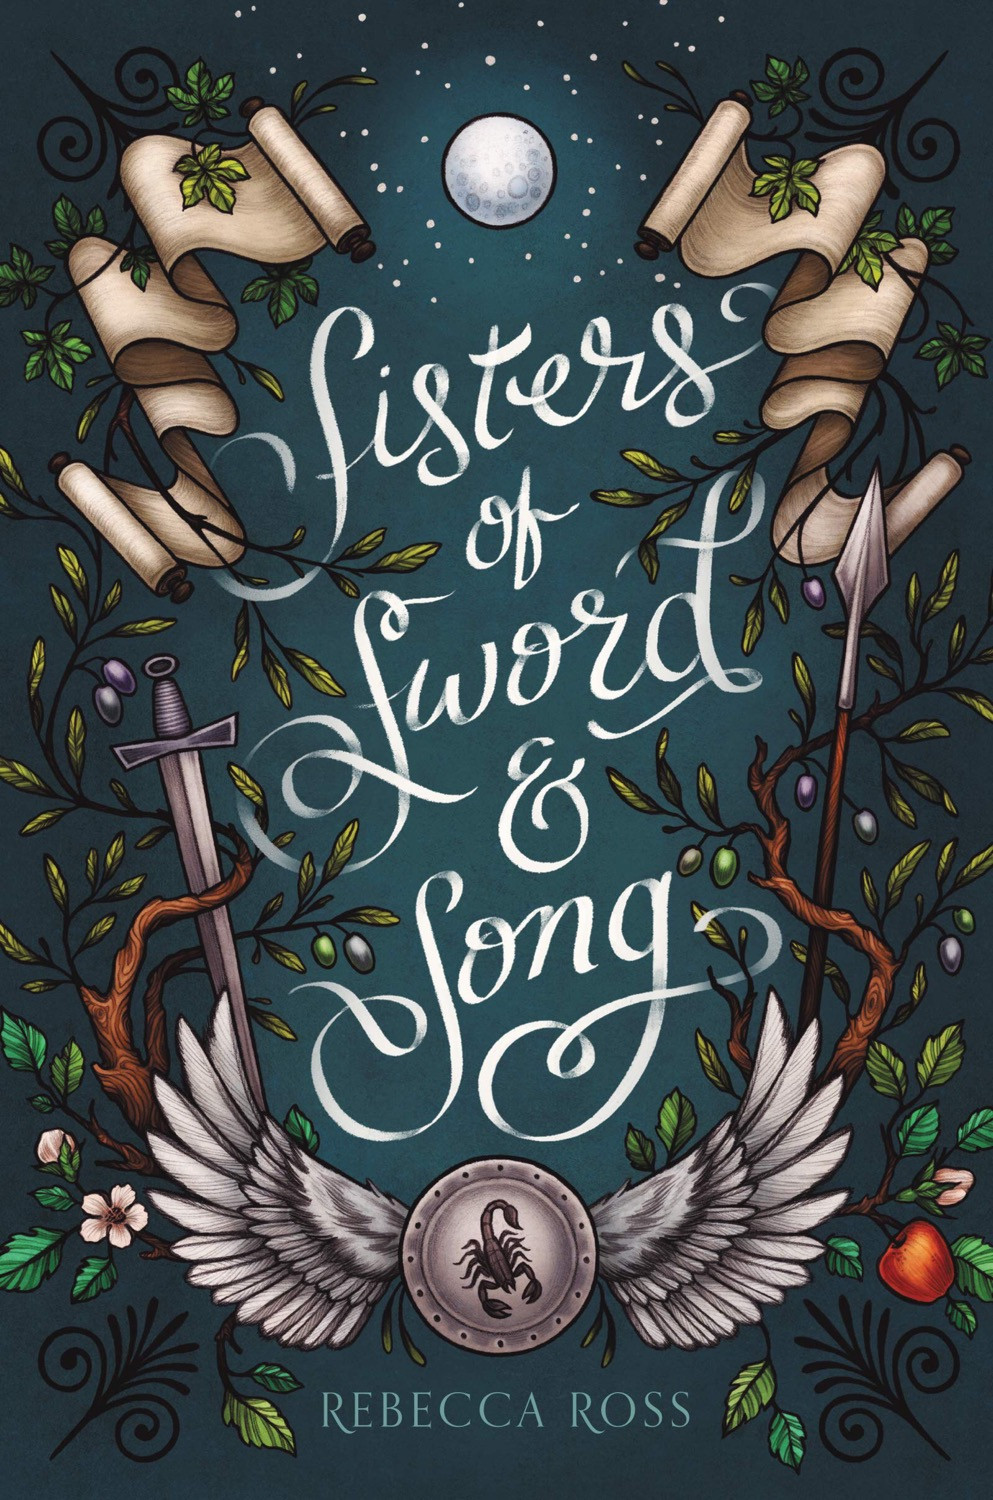 Sisters of Sword and Song by Rebecca Ross - Book Cover | 18 YA Books Out In June 2020